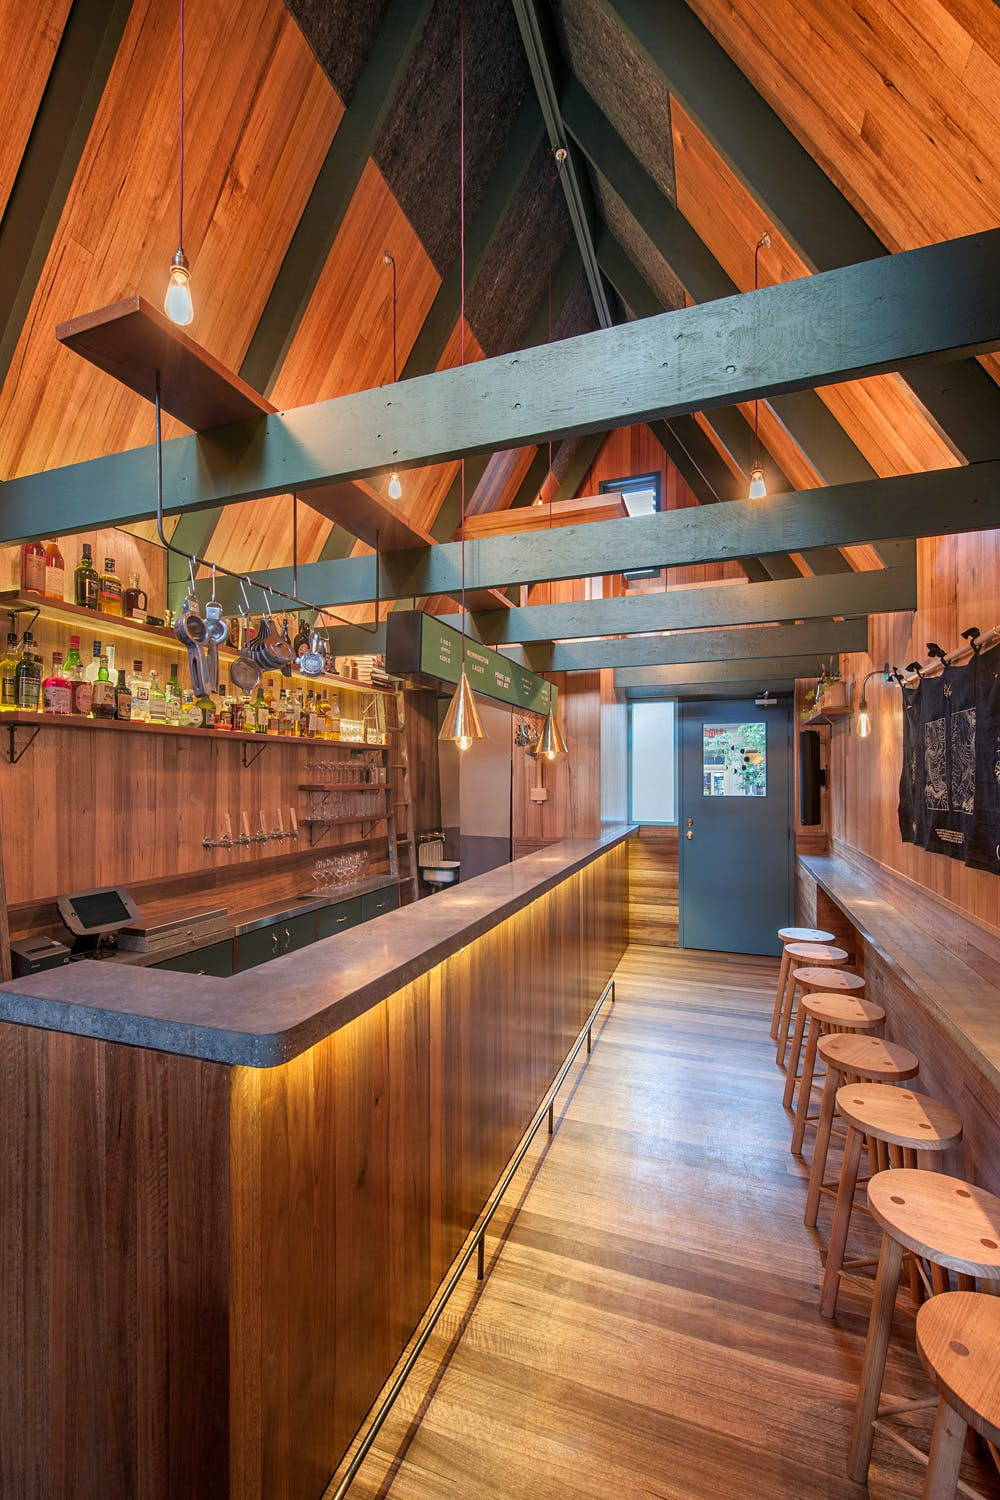 Adelaide S Pink Moon Saloon Is A Snug Fit For A Local